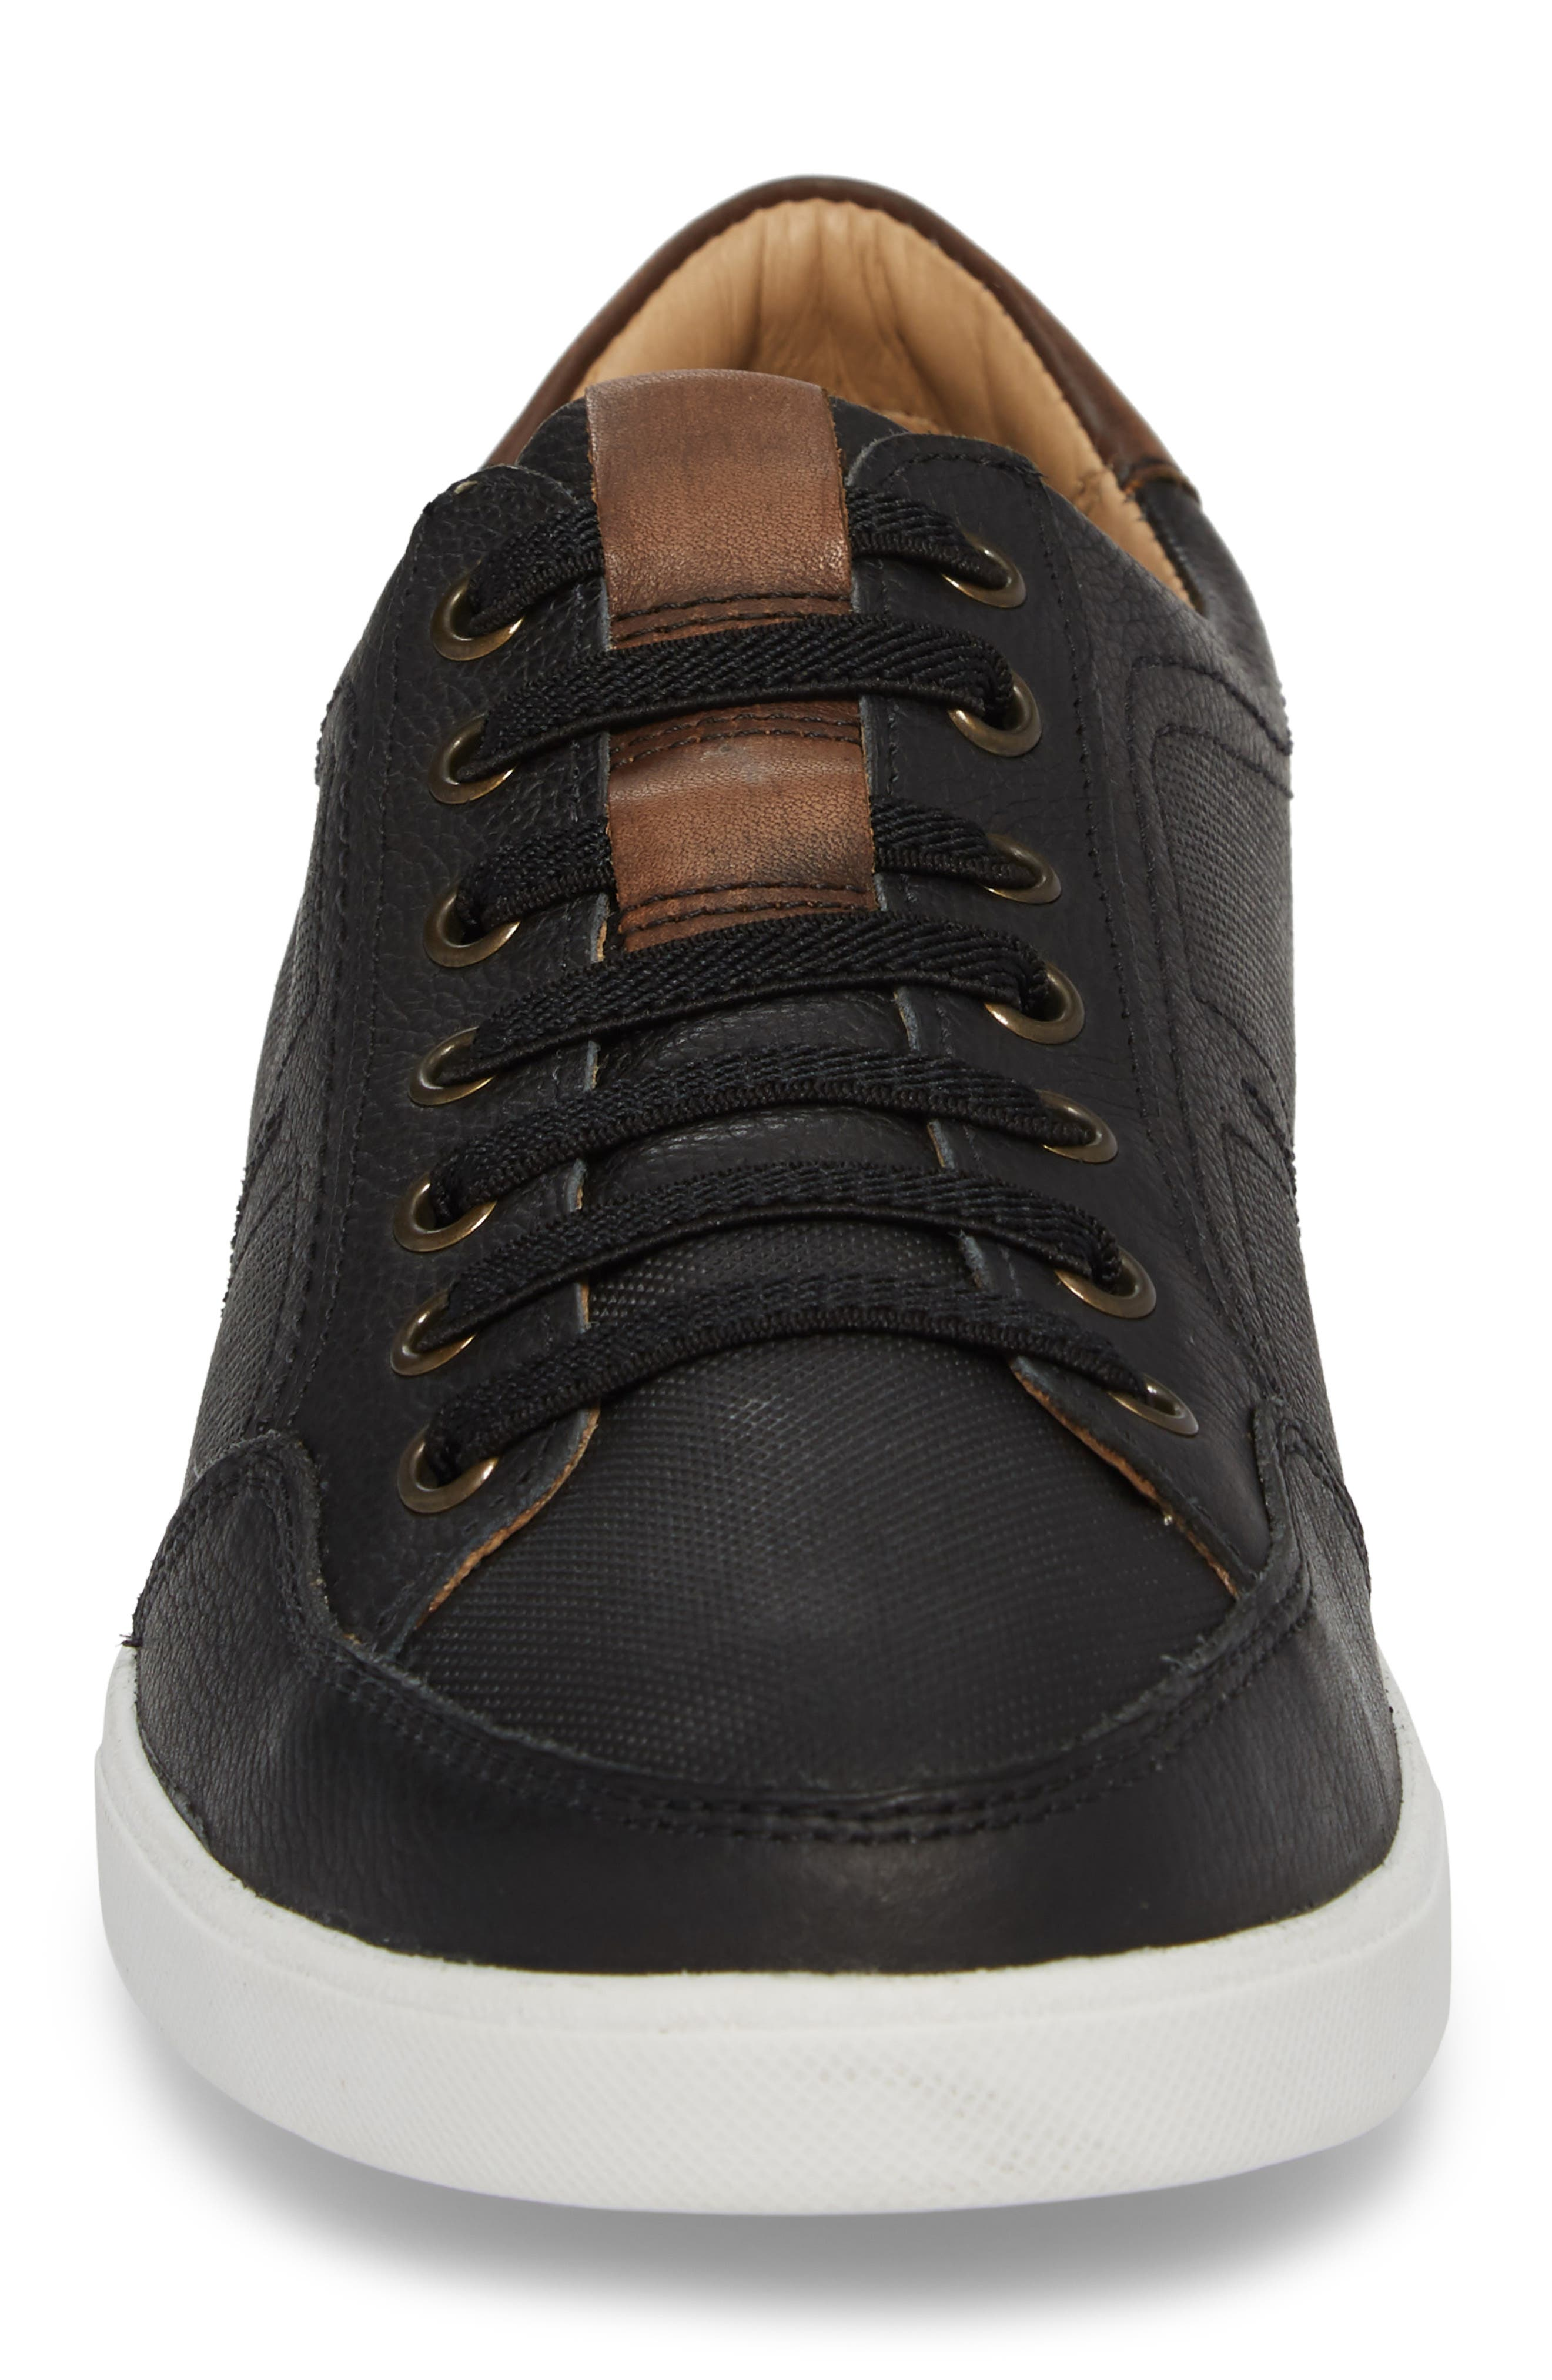 Quinton Textured Low Top Sneaker,                             Alternate thumbnail 4, color,                             BLACK LEATHER